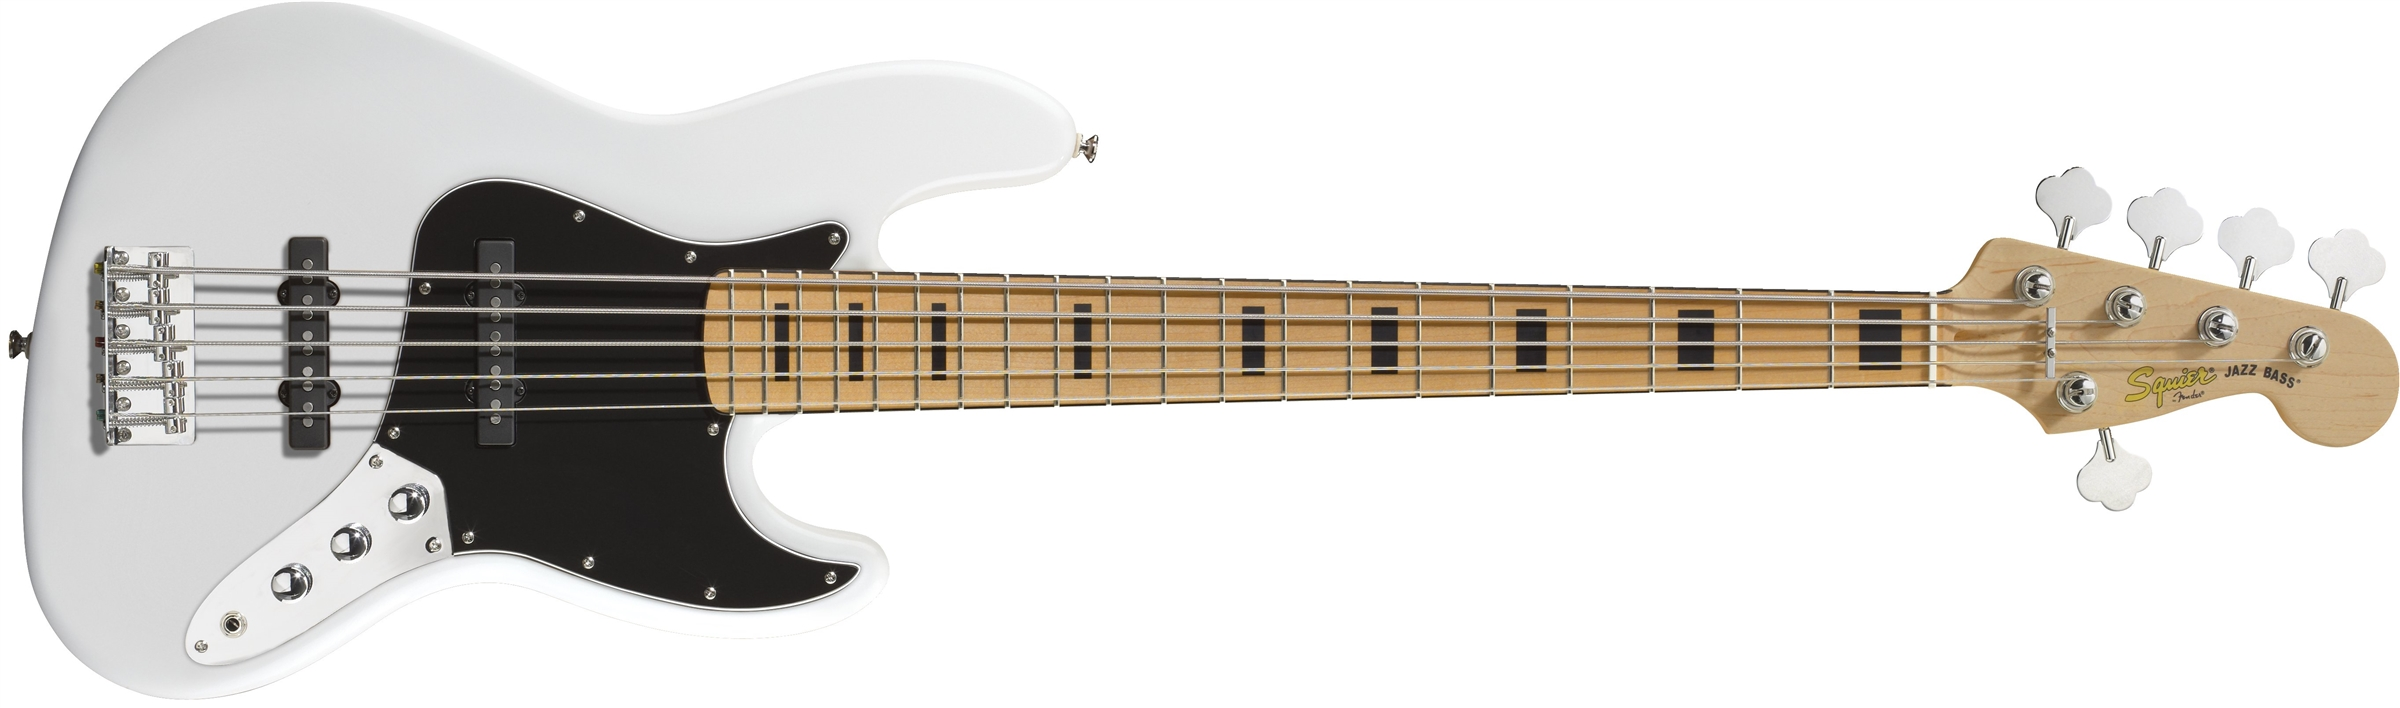 squier vintage modified jazz bass v maple fingerboard olympic white squier bass guitars. Black Bedroom Furniture Sets. Home Design Ideas